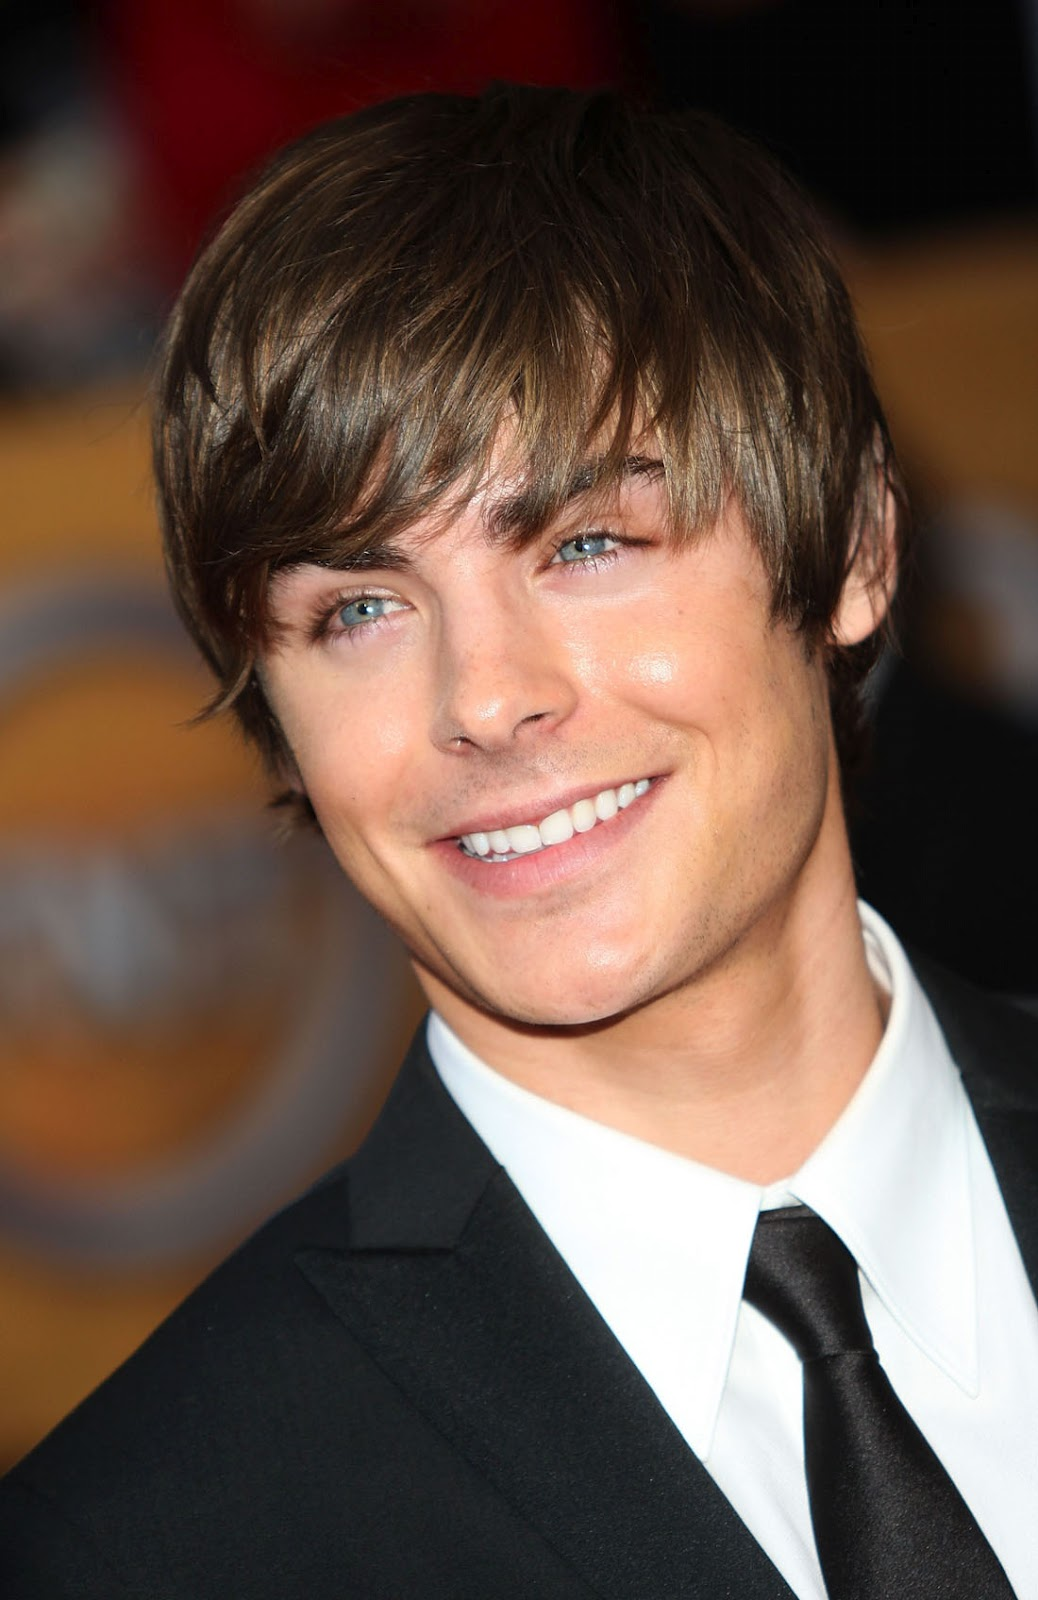 http://4.bp.blogspot.com/-lD7tnc8x5h4/TzwyDP994FI/AAAAAAAANBc/65SoxfuCJ68/s1600/Zac-Efron-Hollywood-Best-Actor.jpg